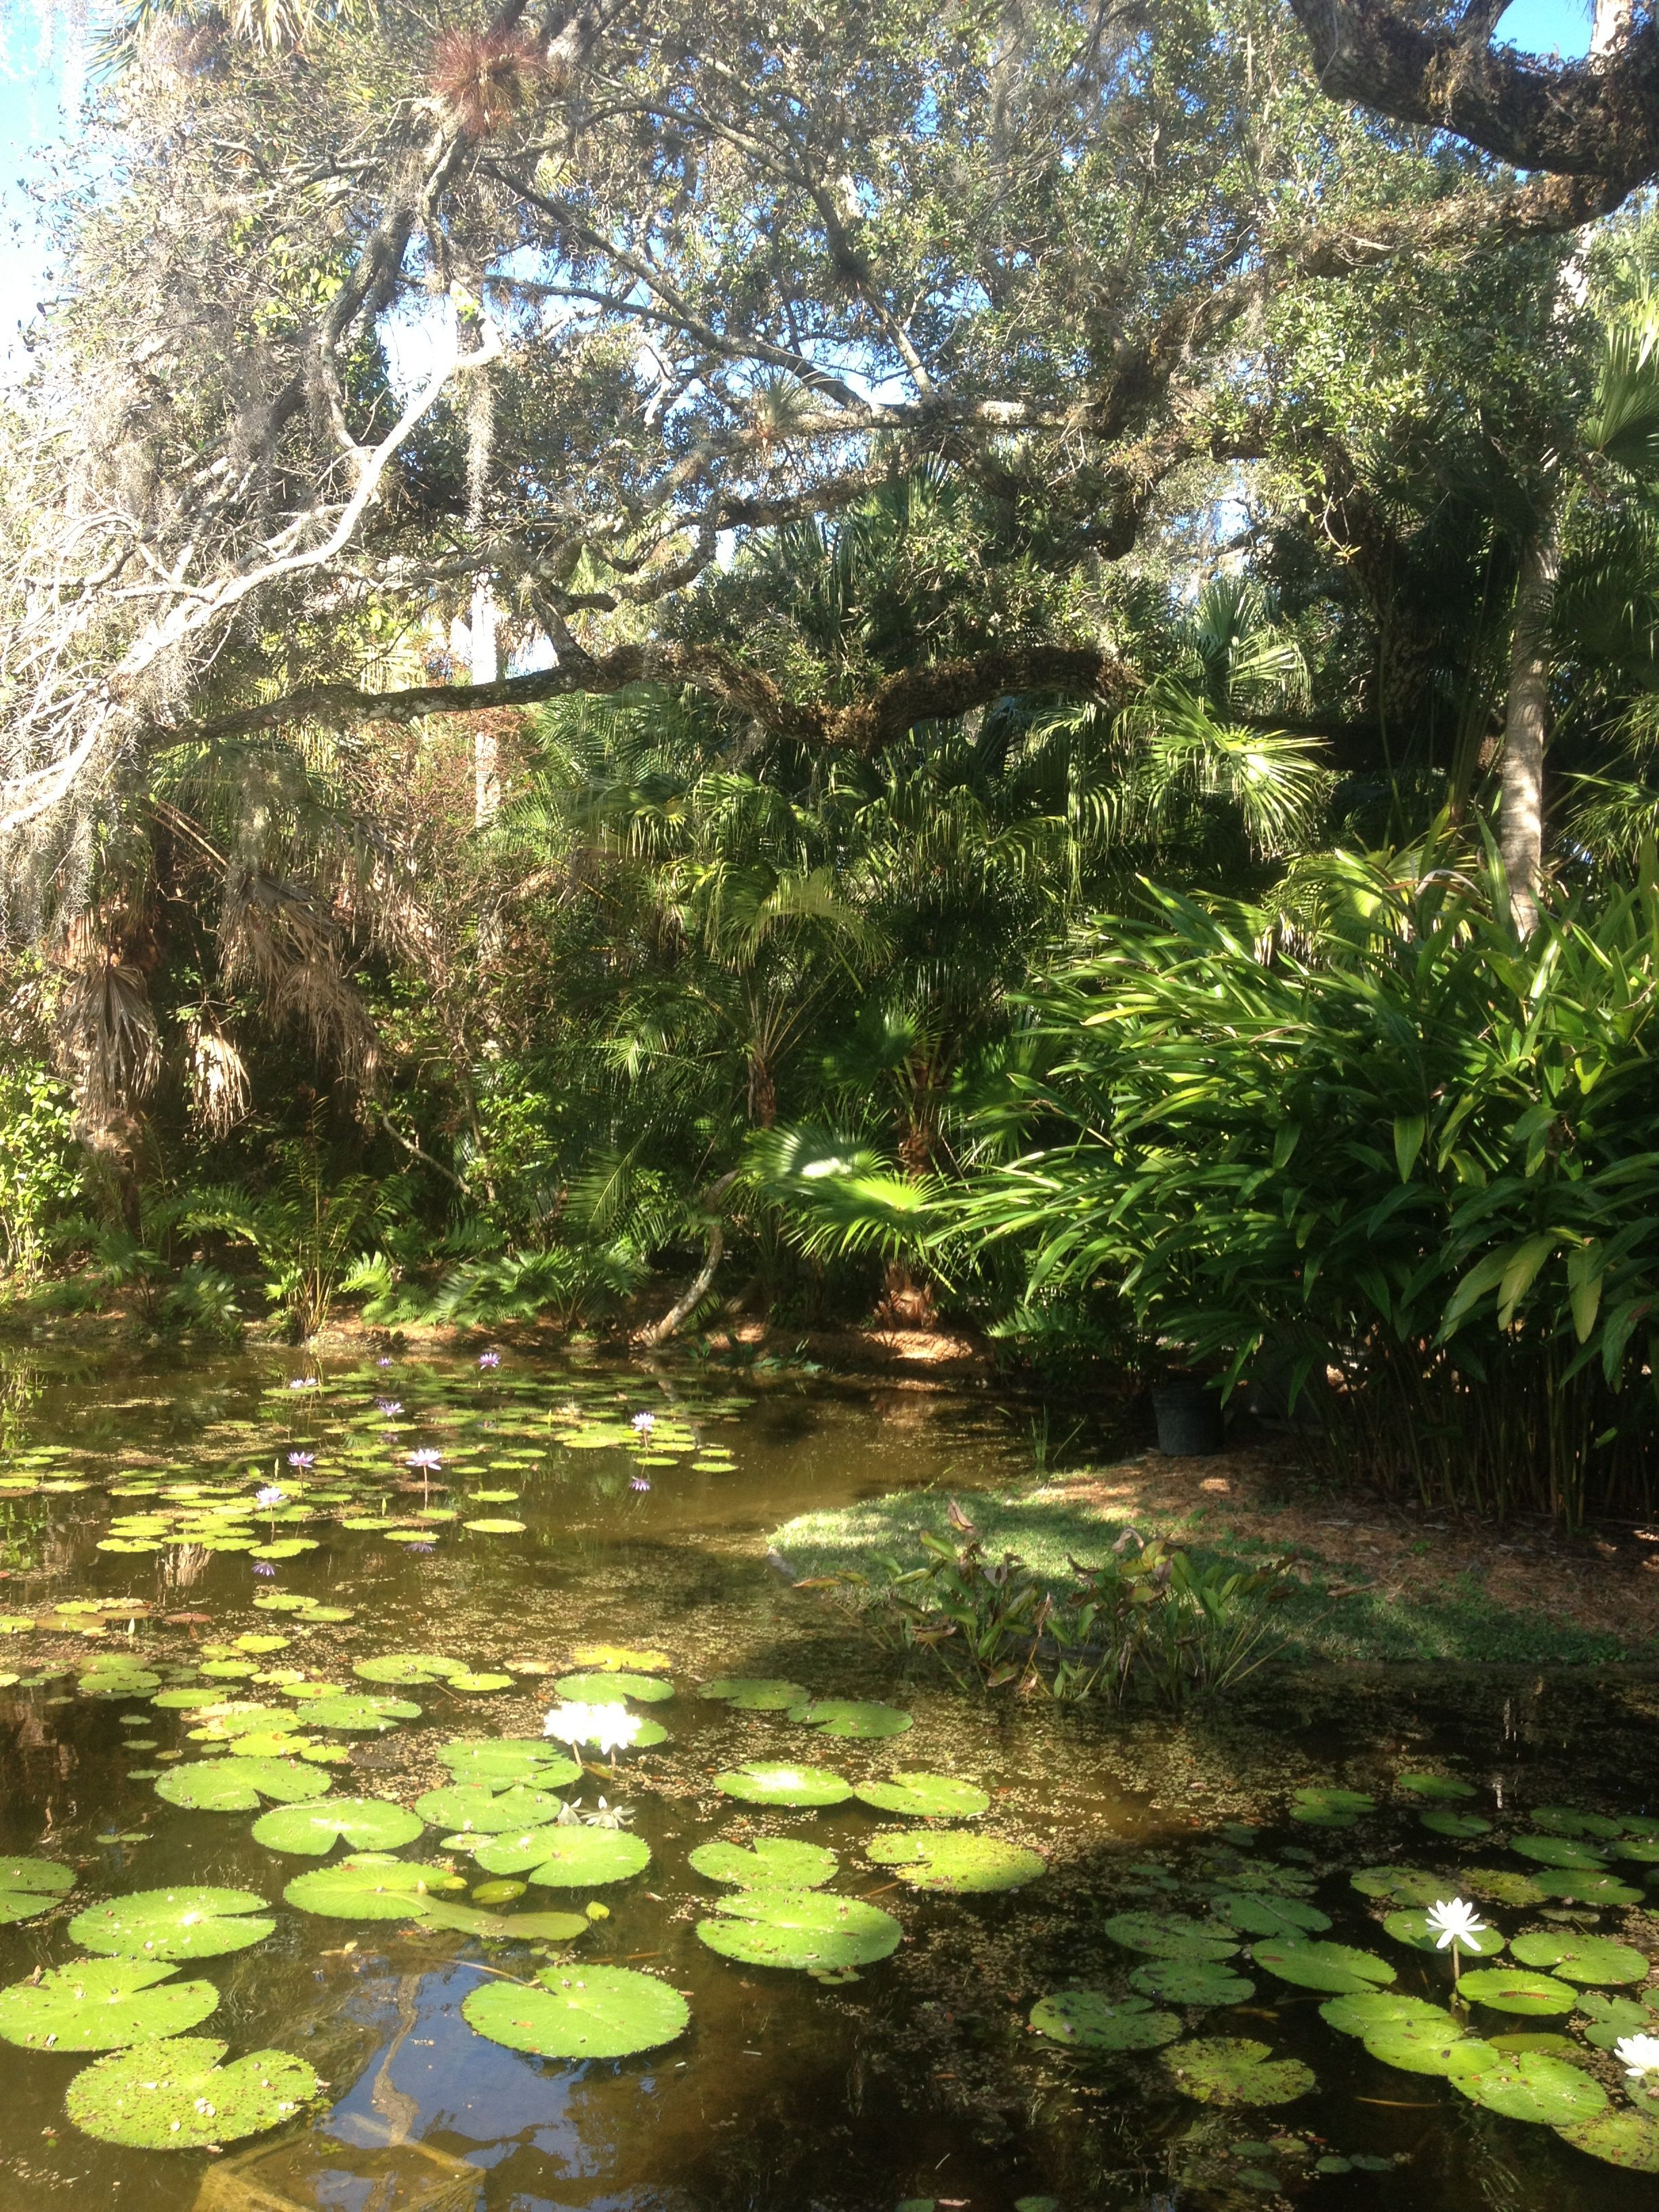 McKee botanical gardens Vero Beach Fl. Beautiful gardens and ...